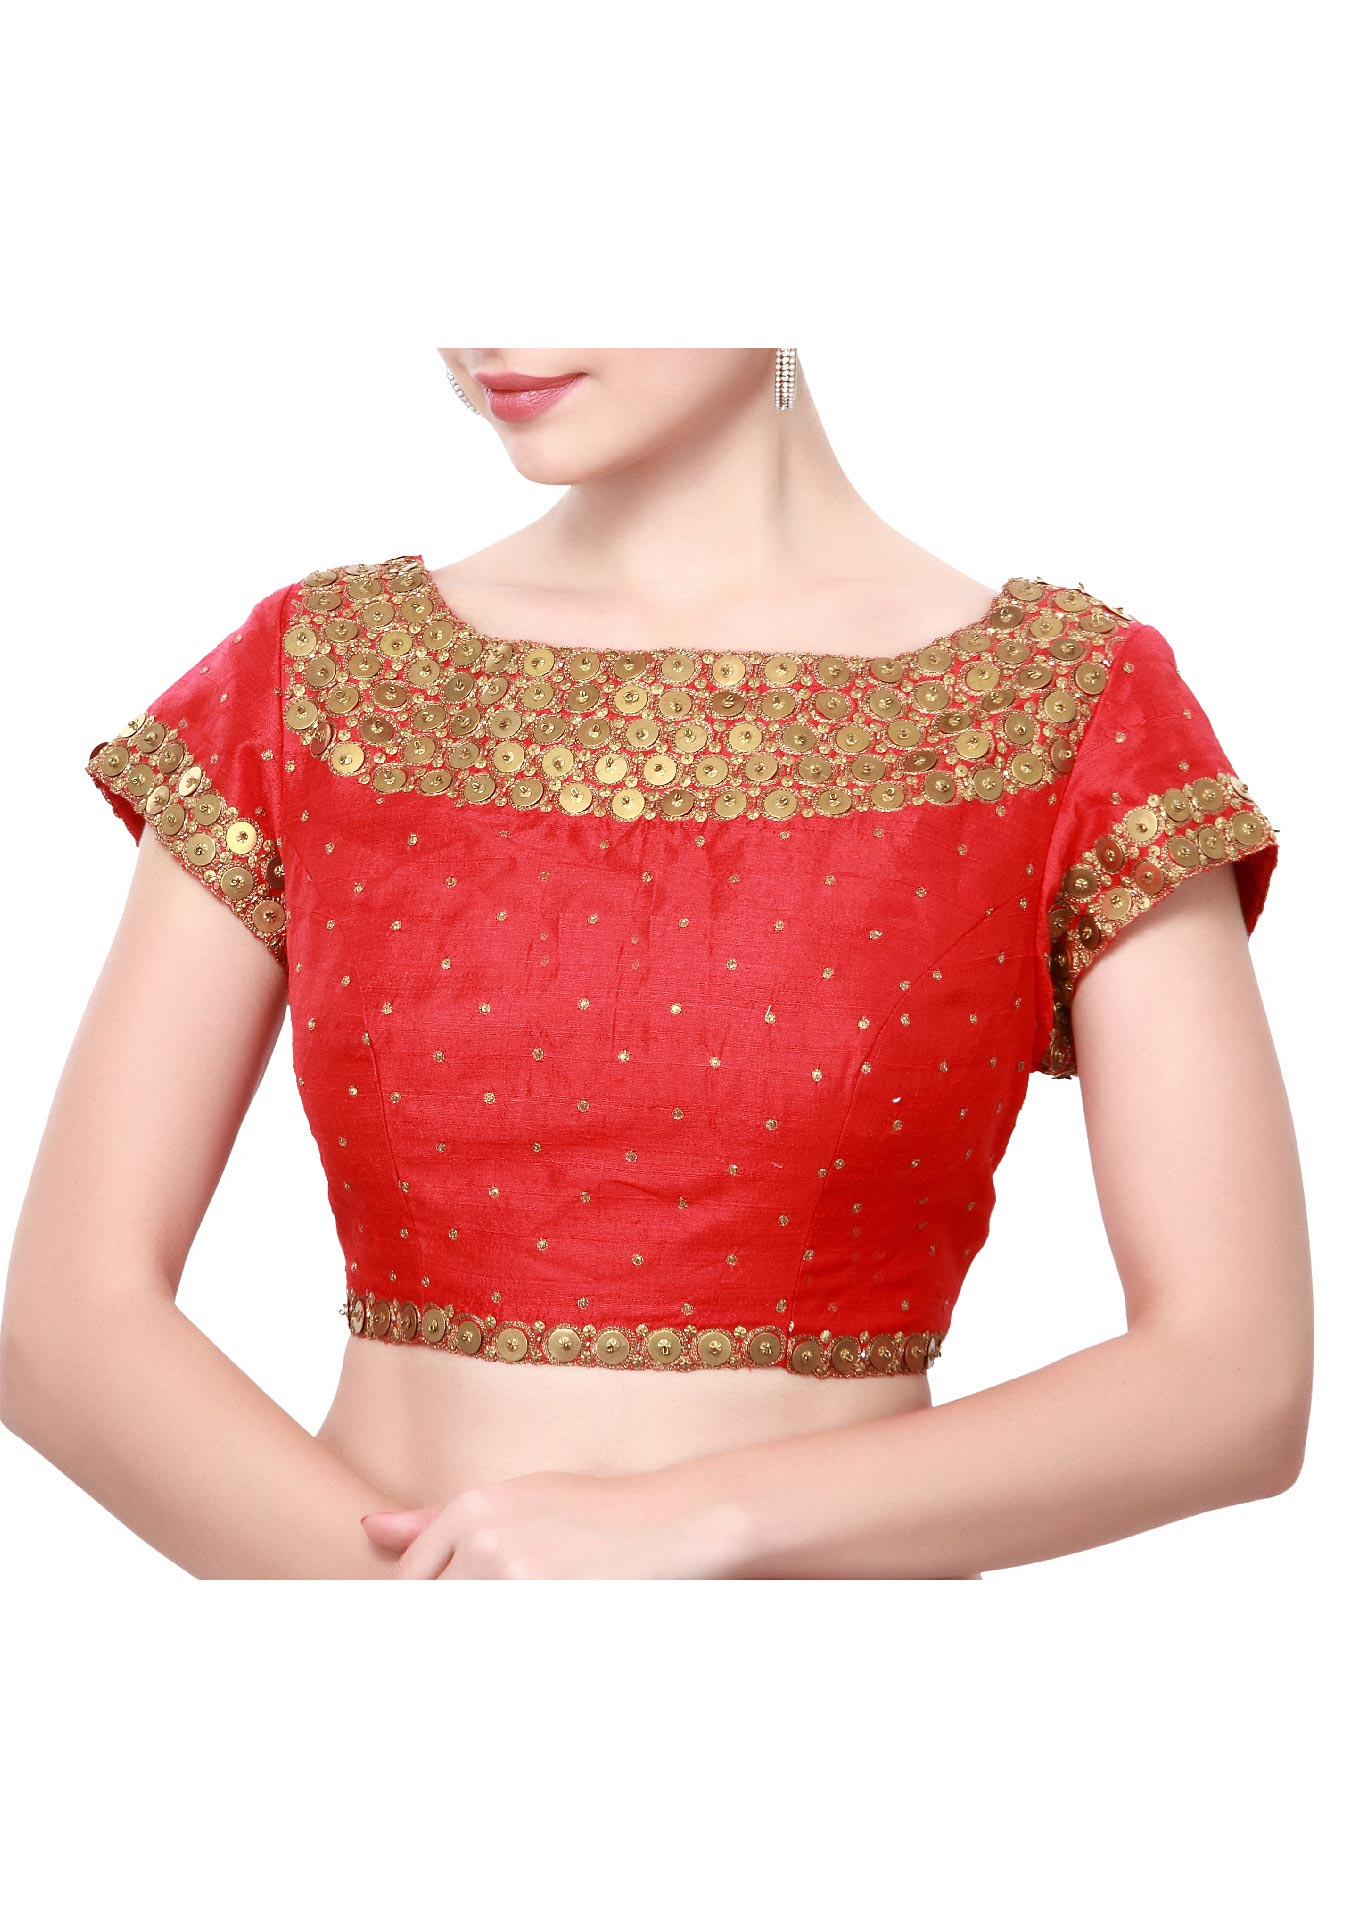 f1028da478c1cc Red blouse featuring in sequin embroidery only on Kalki